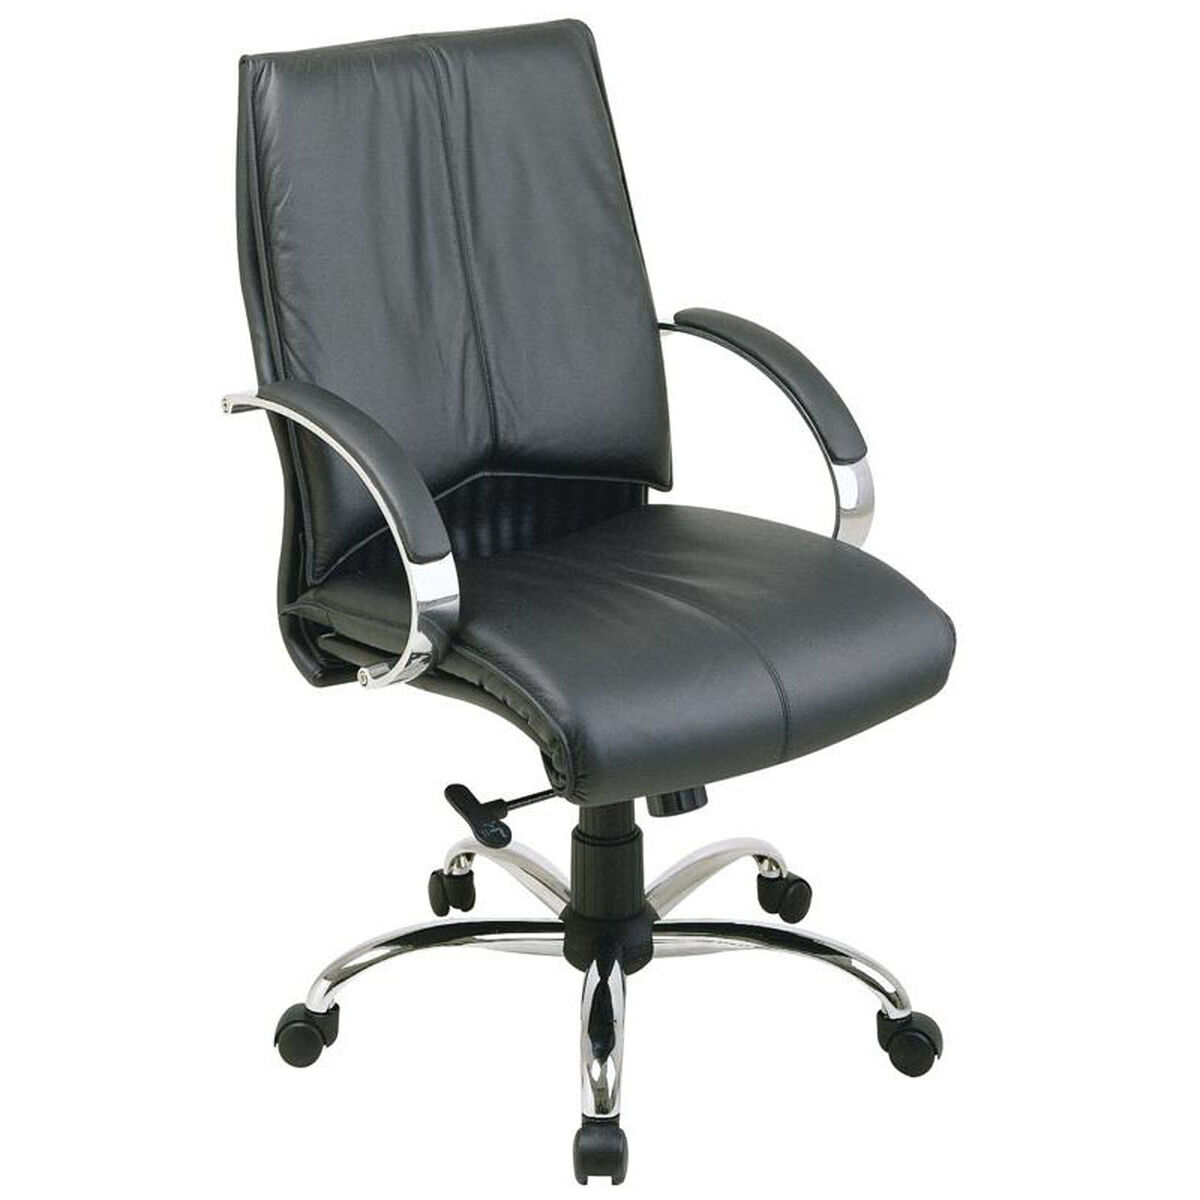 Pro Line Ii Black Leather Chair 8201 Schoolfurniture4less Com